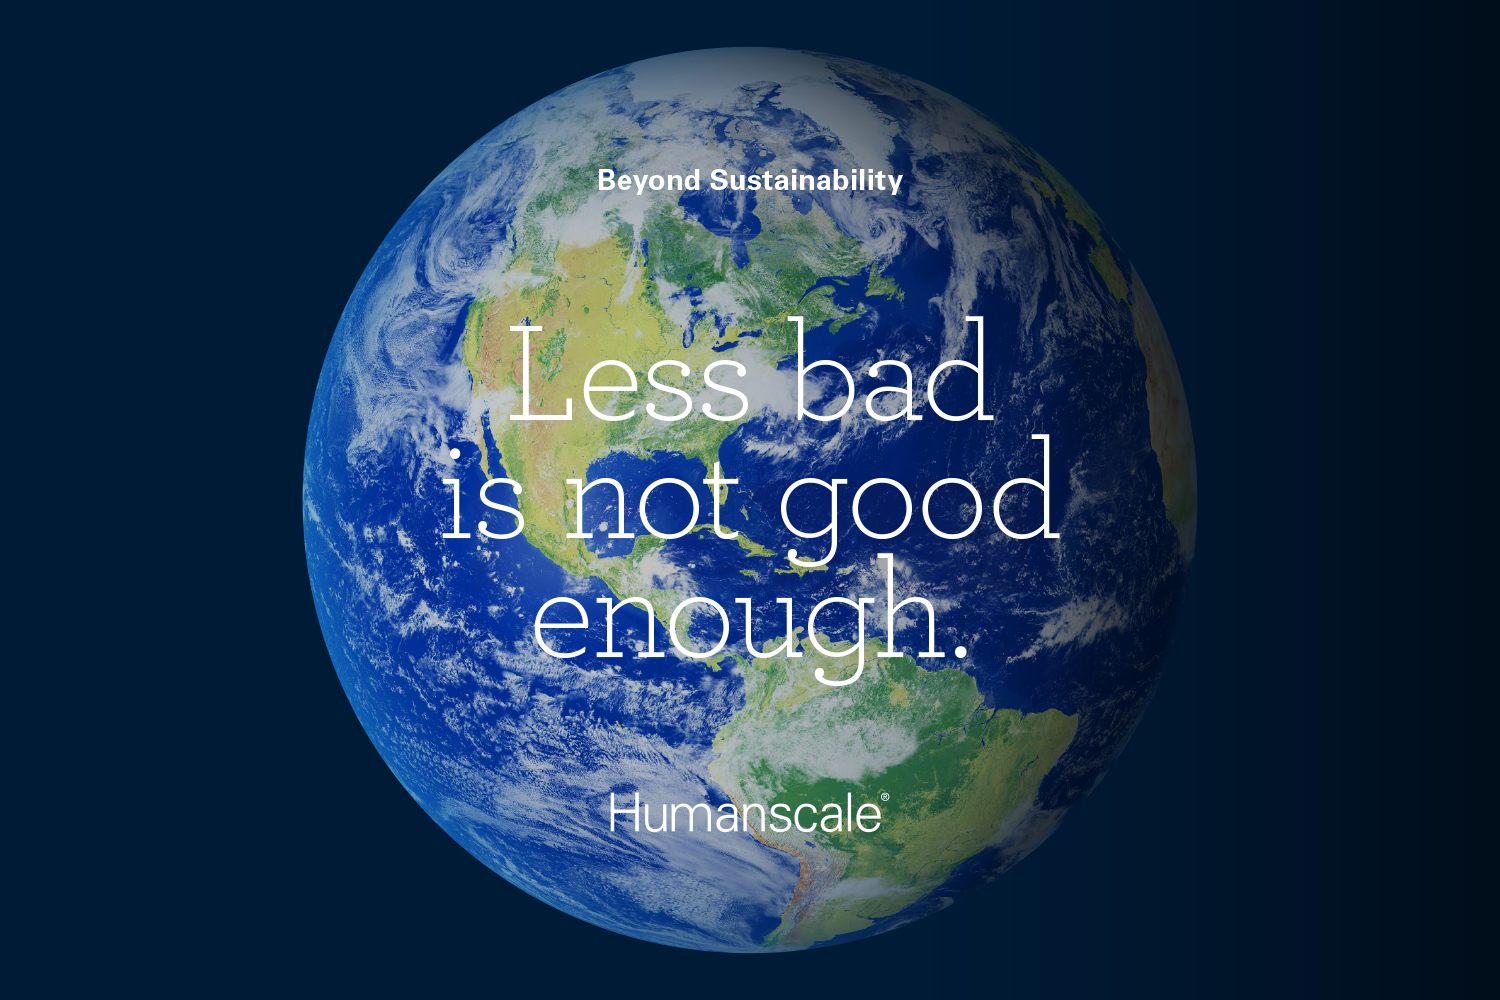 Humanscale's Annual CSR Report Demonstrates CEO's Philosophy:  Less Bad is Not Good Enough